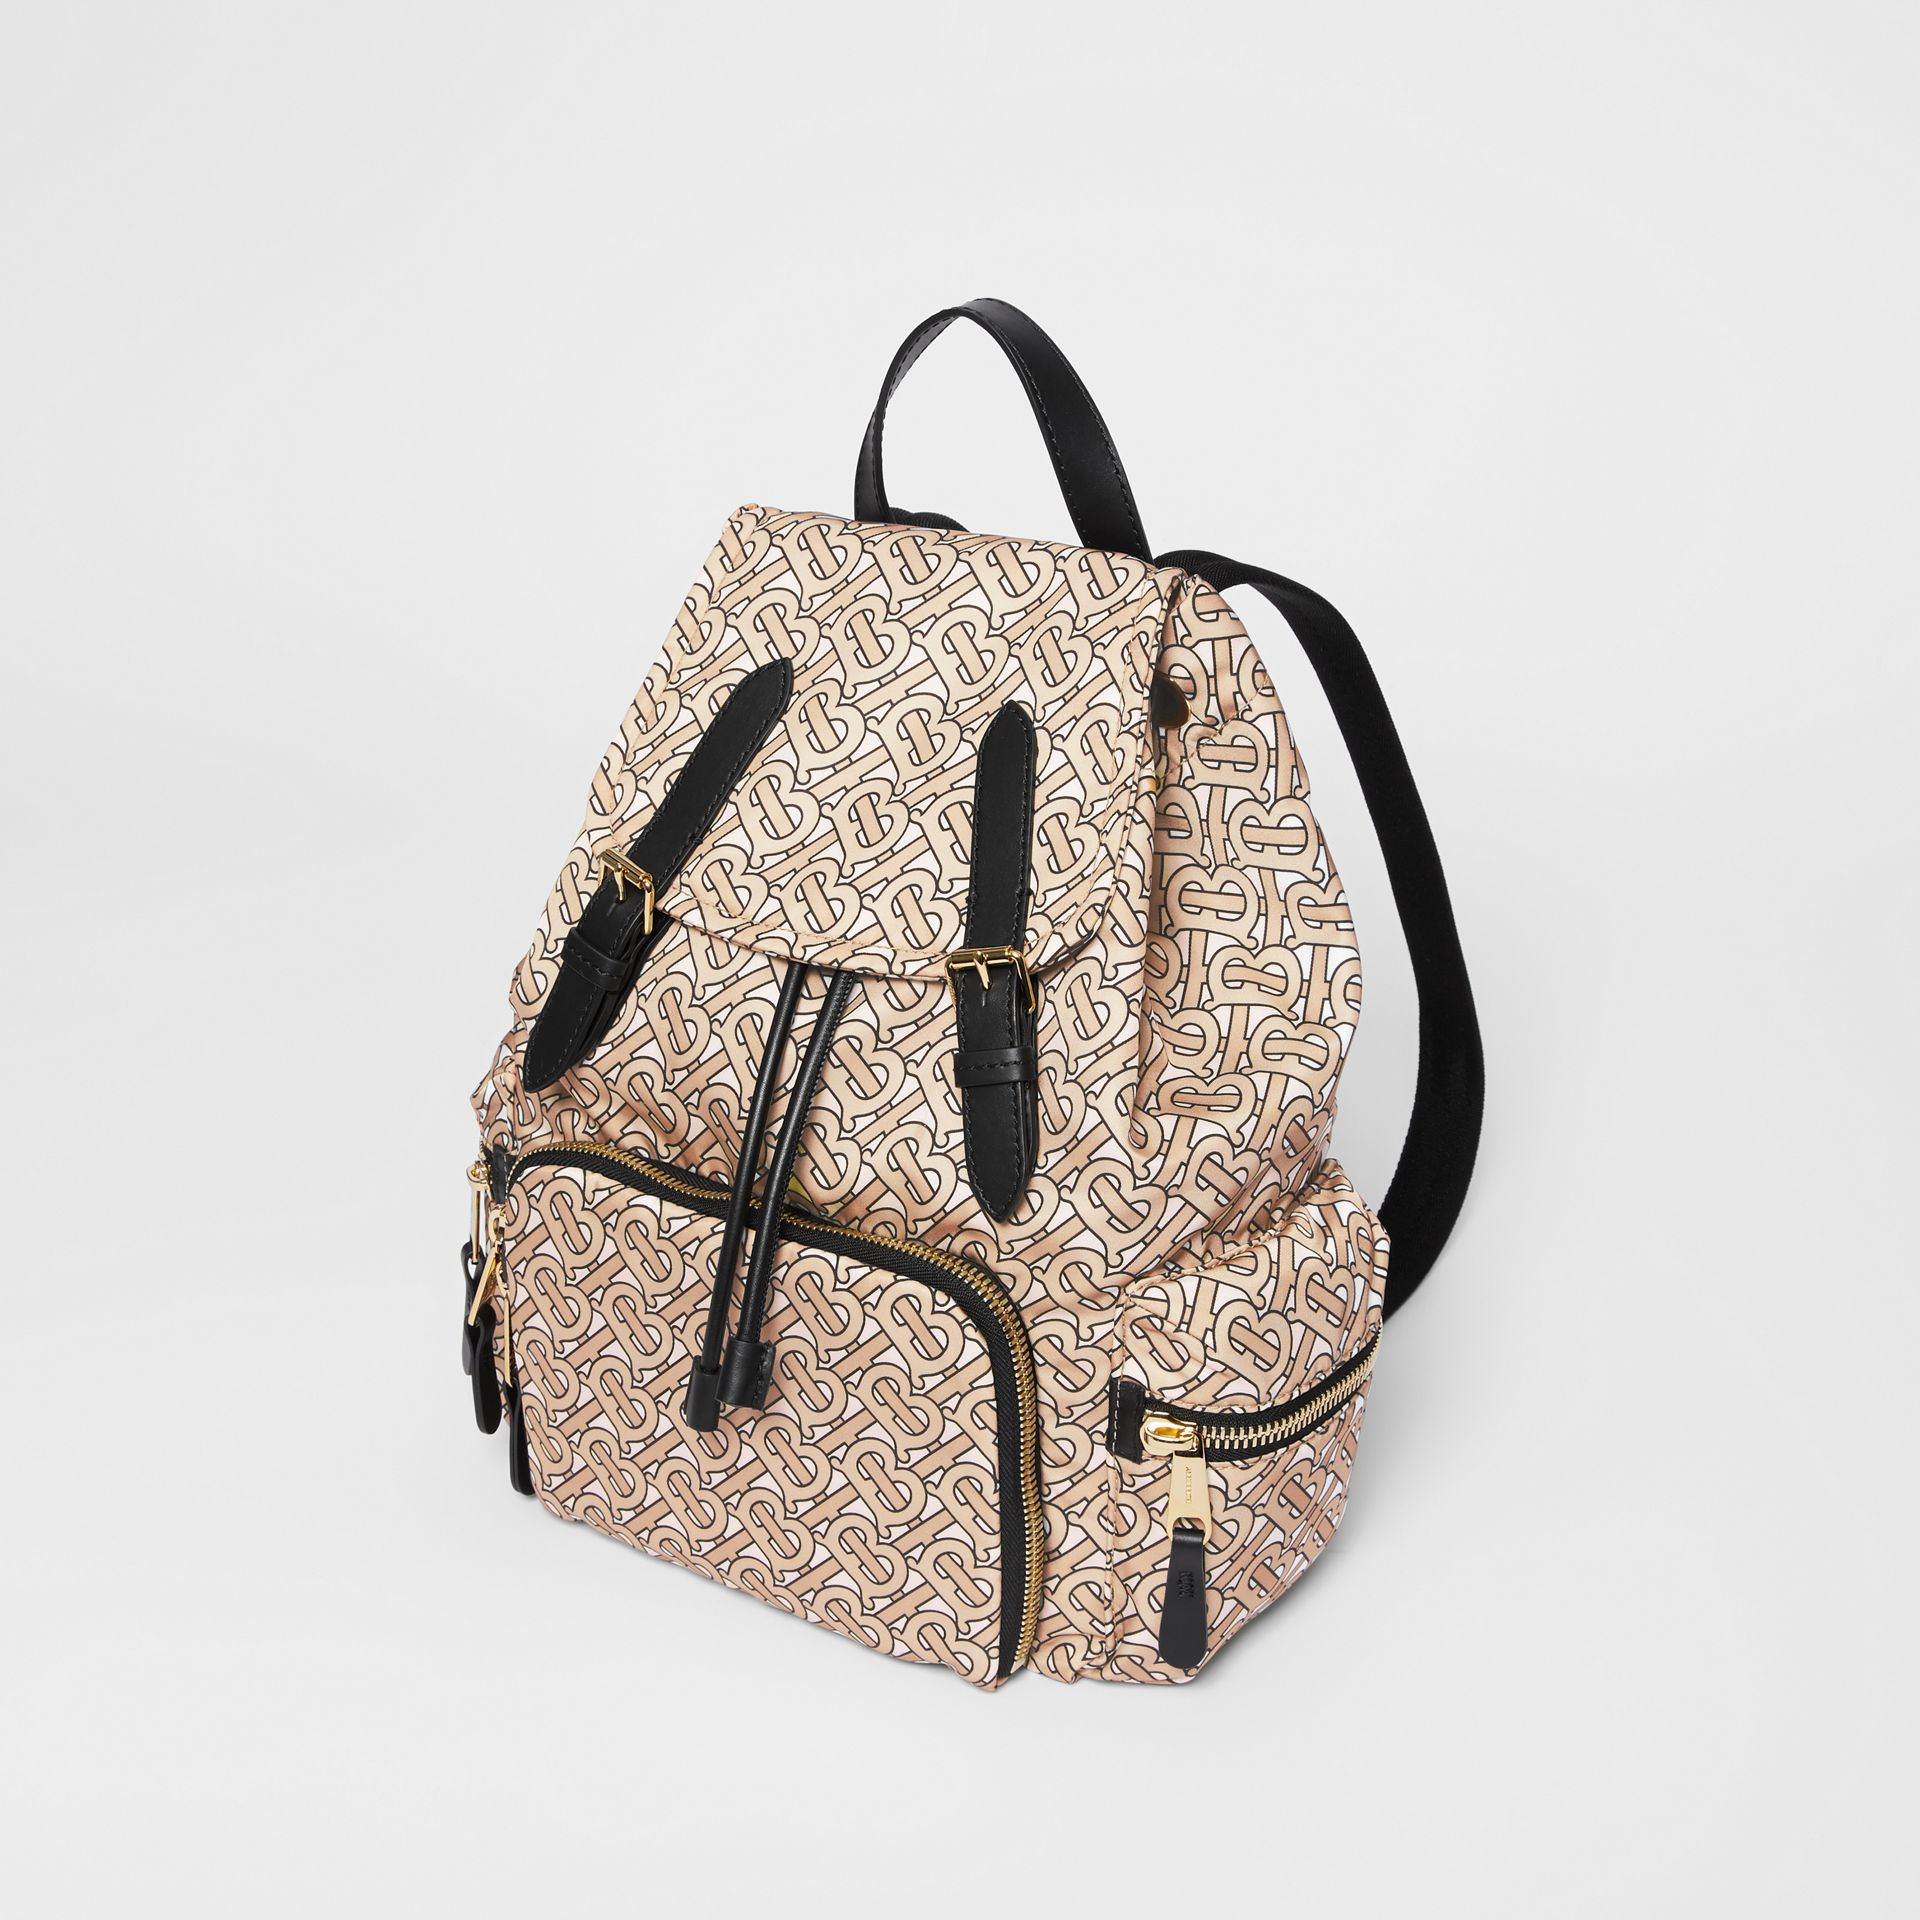 Sac The Rucksack moyen en nylon Monogram (Beige) - Femme | Burberry - photo de la galerie 3